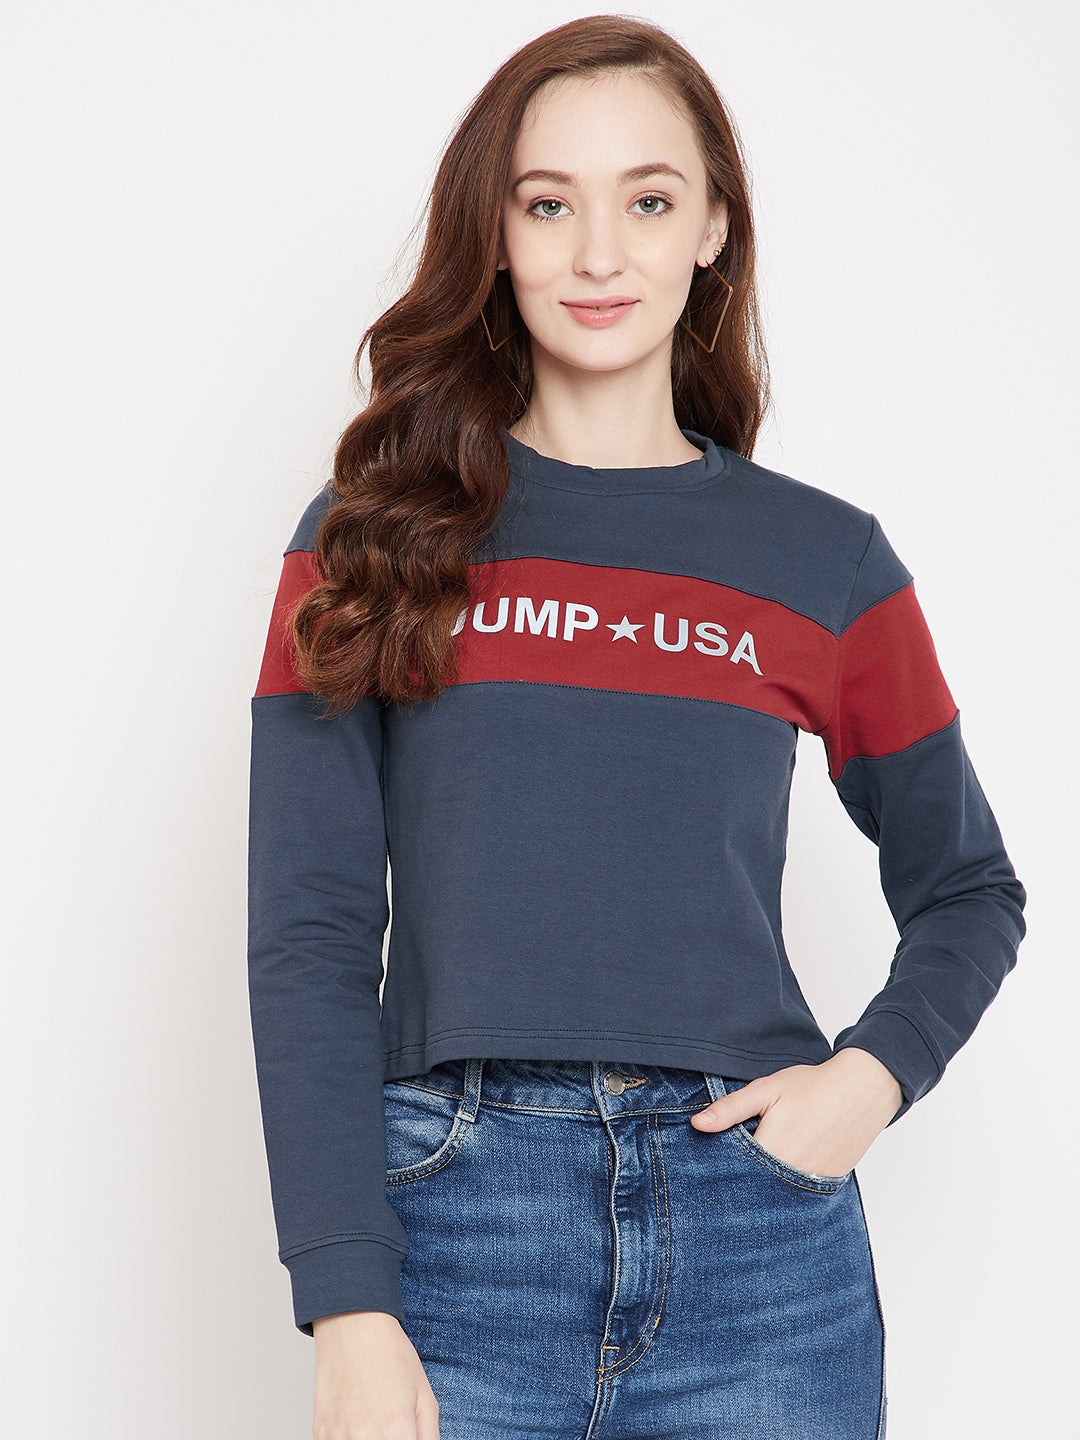 JUMP USA Women Navy Blue Sweatshirt